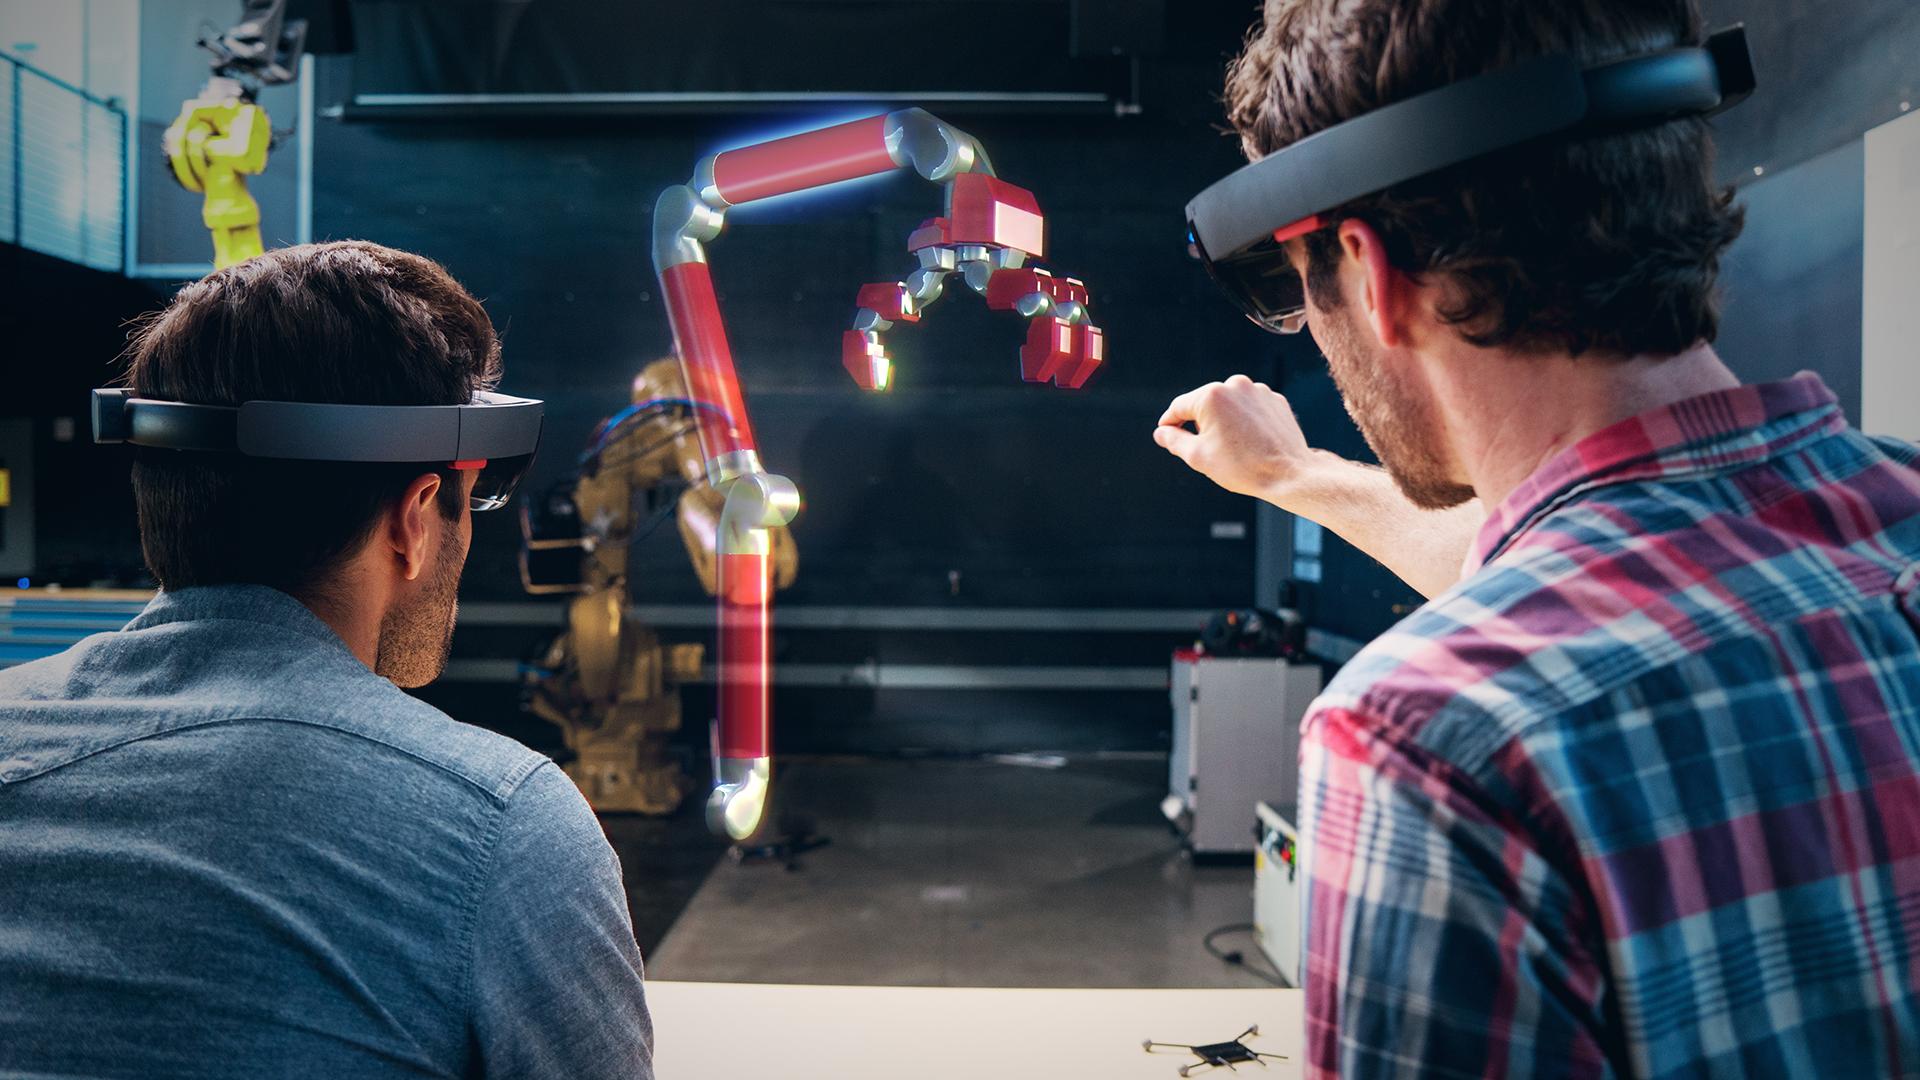 Microsoft HoloLens mixed reality technology blends with Autodesk software for the new FreeForm joint project.